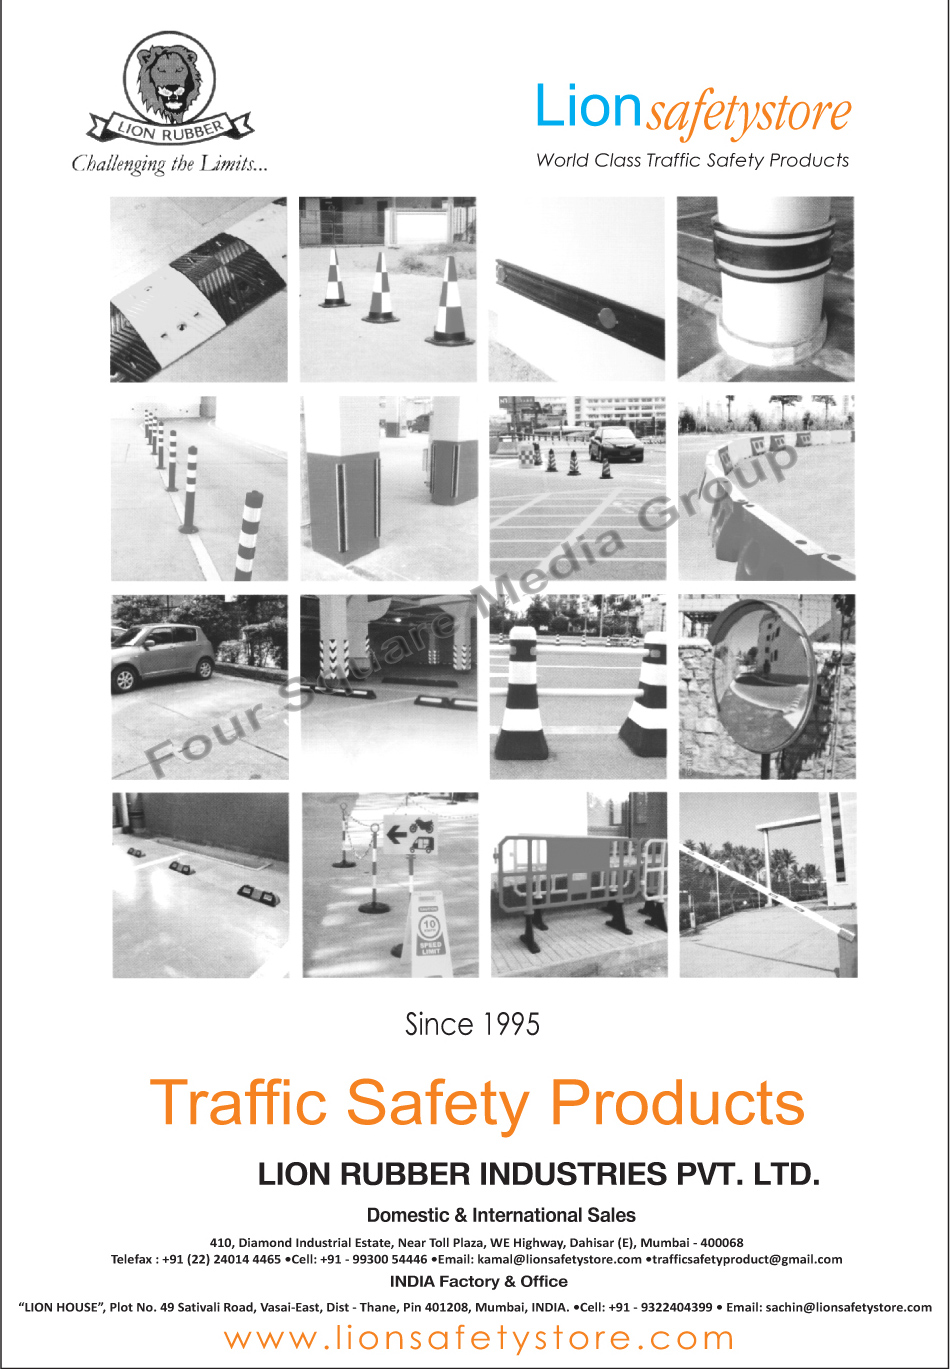 Road Safety Products, Traffic Safety Products, Speed Breakers, Rubber Column Guards, Rubber Wall Guards, Rubber Pillar Guards, Rubber Wheel Stoppers, PU Spring Posts, Convex Mirrors, Traffic Cones, Crash Barriers